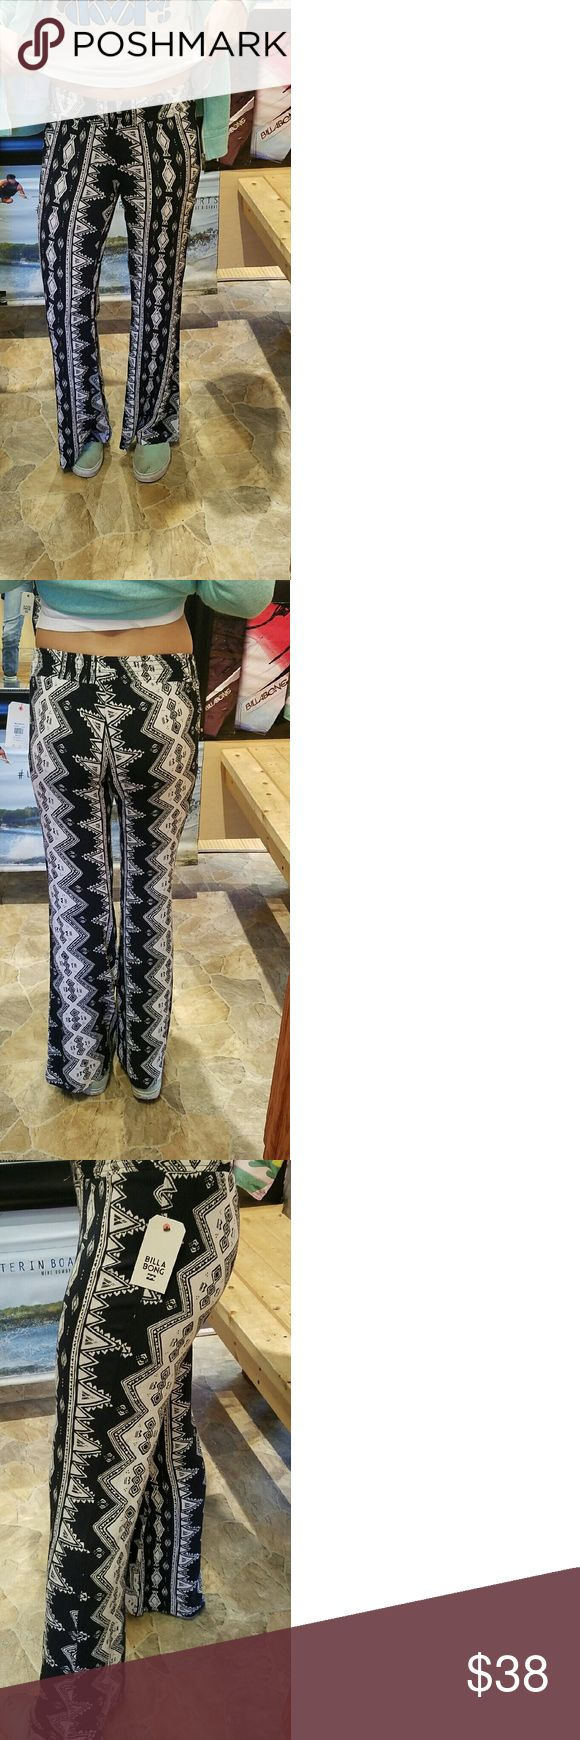 Billabong beach pants Black and white beach pants. Made of 100% rayon. Never been worn. New with tags! All offers considered and please feel free to ask questions!!!! Billabong Pants